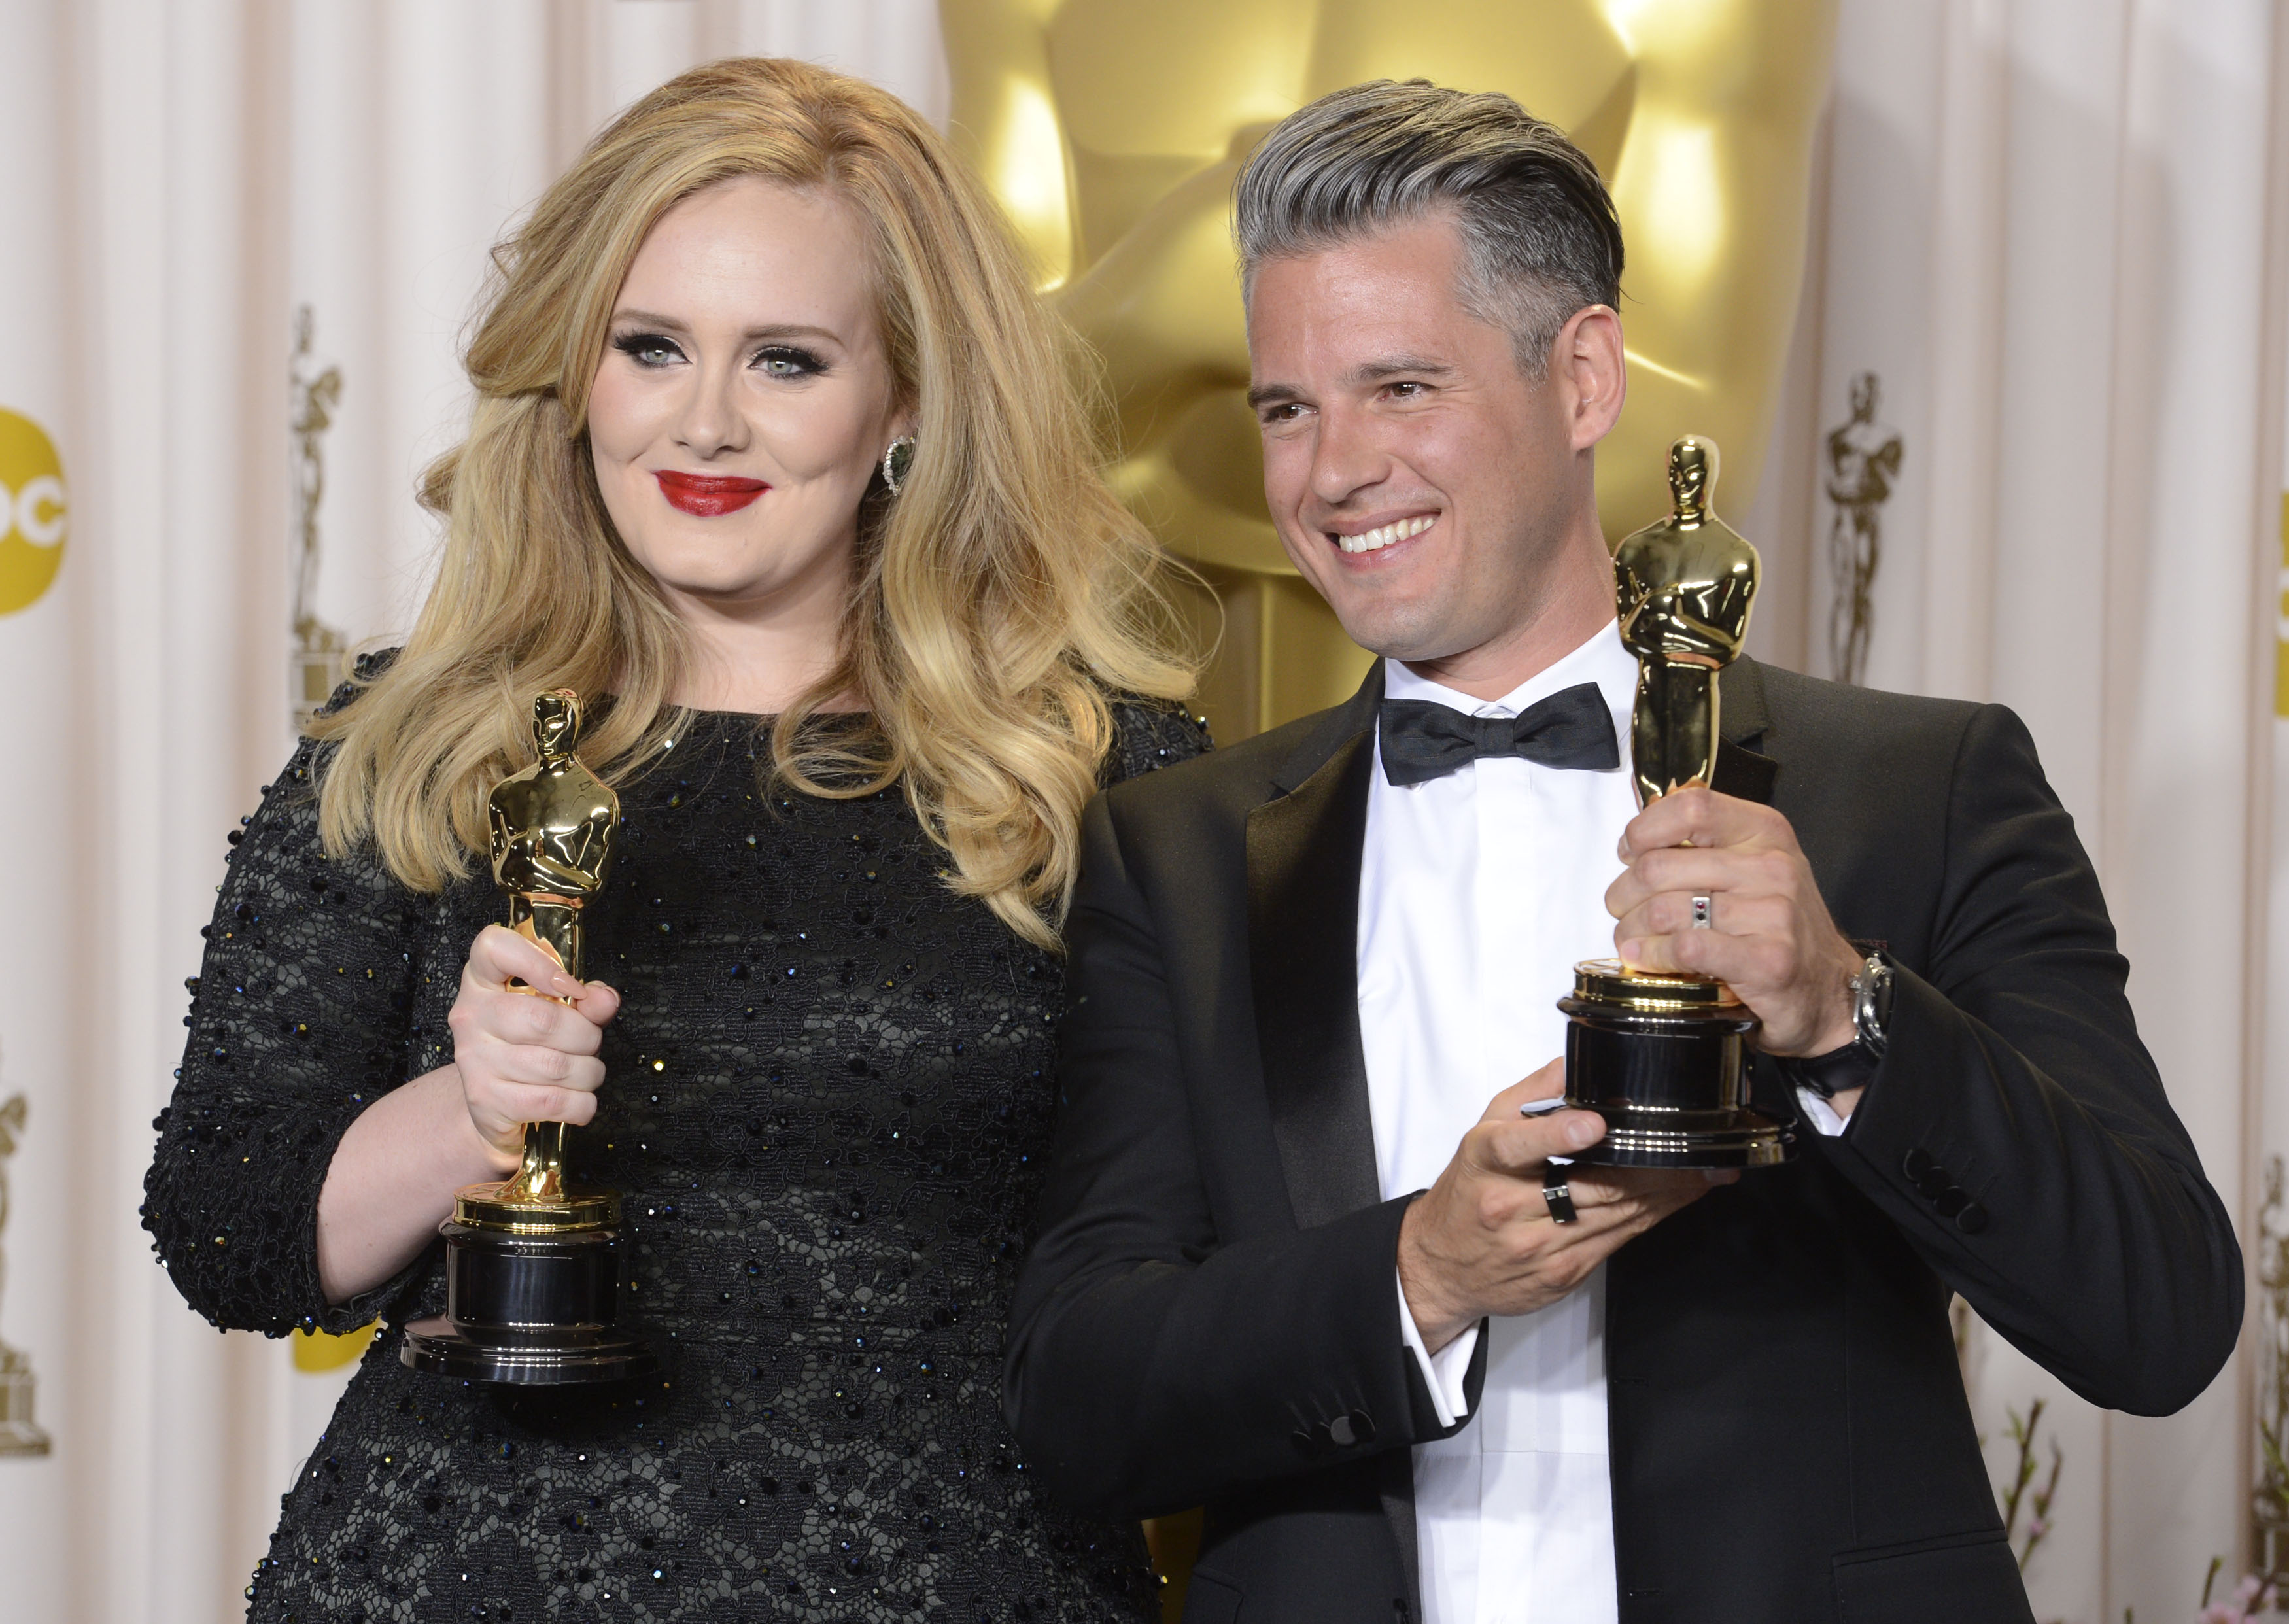 Image #: 21361139    OSCARS – PRESSROOM – Adele Adkins and Paul Eqworth pose with their Oscars for Achievement in Music (Or